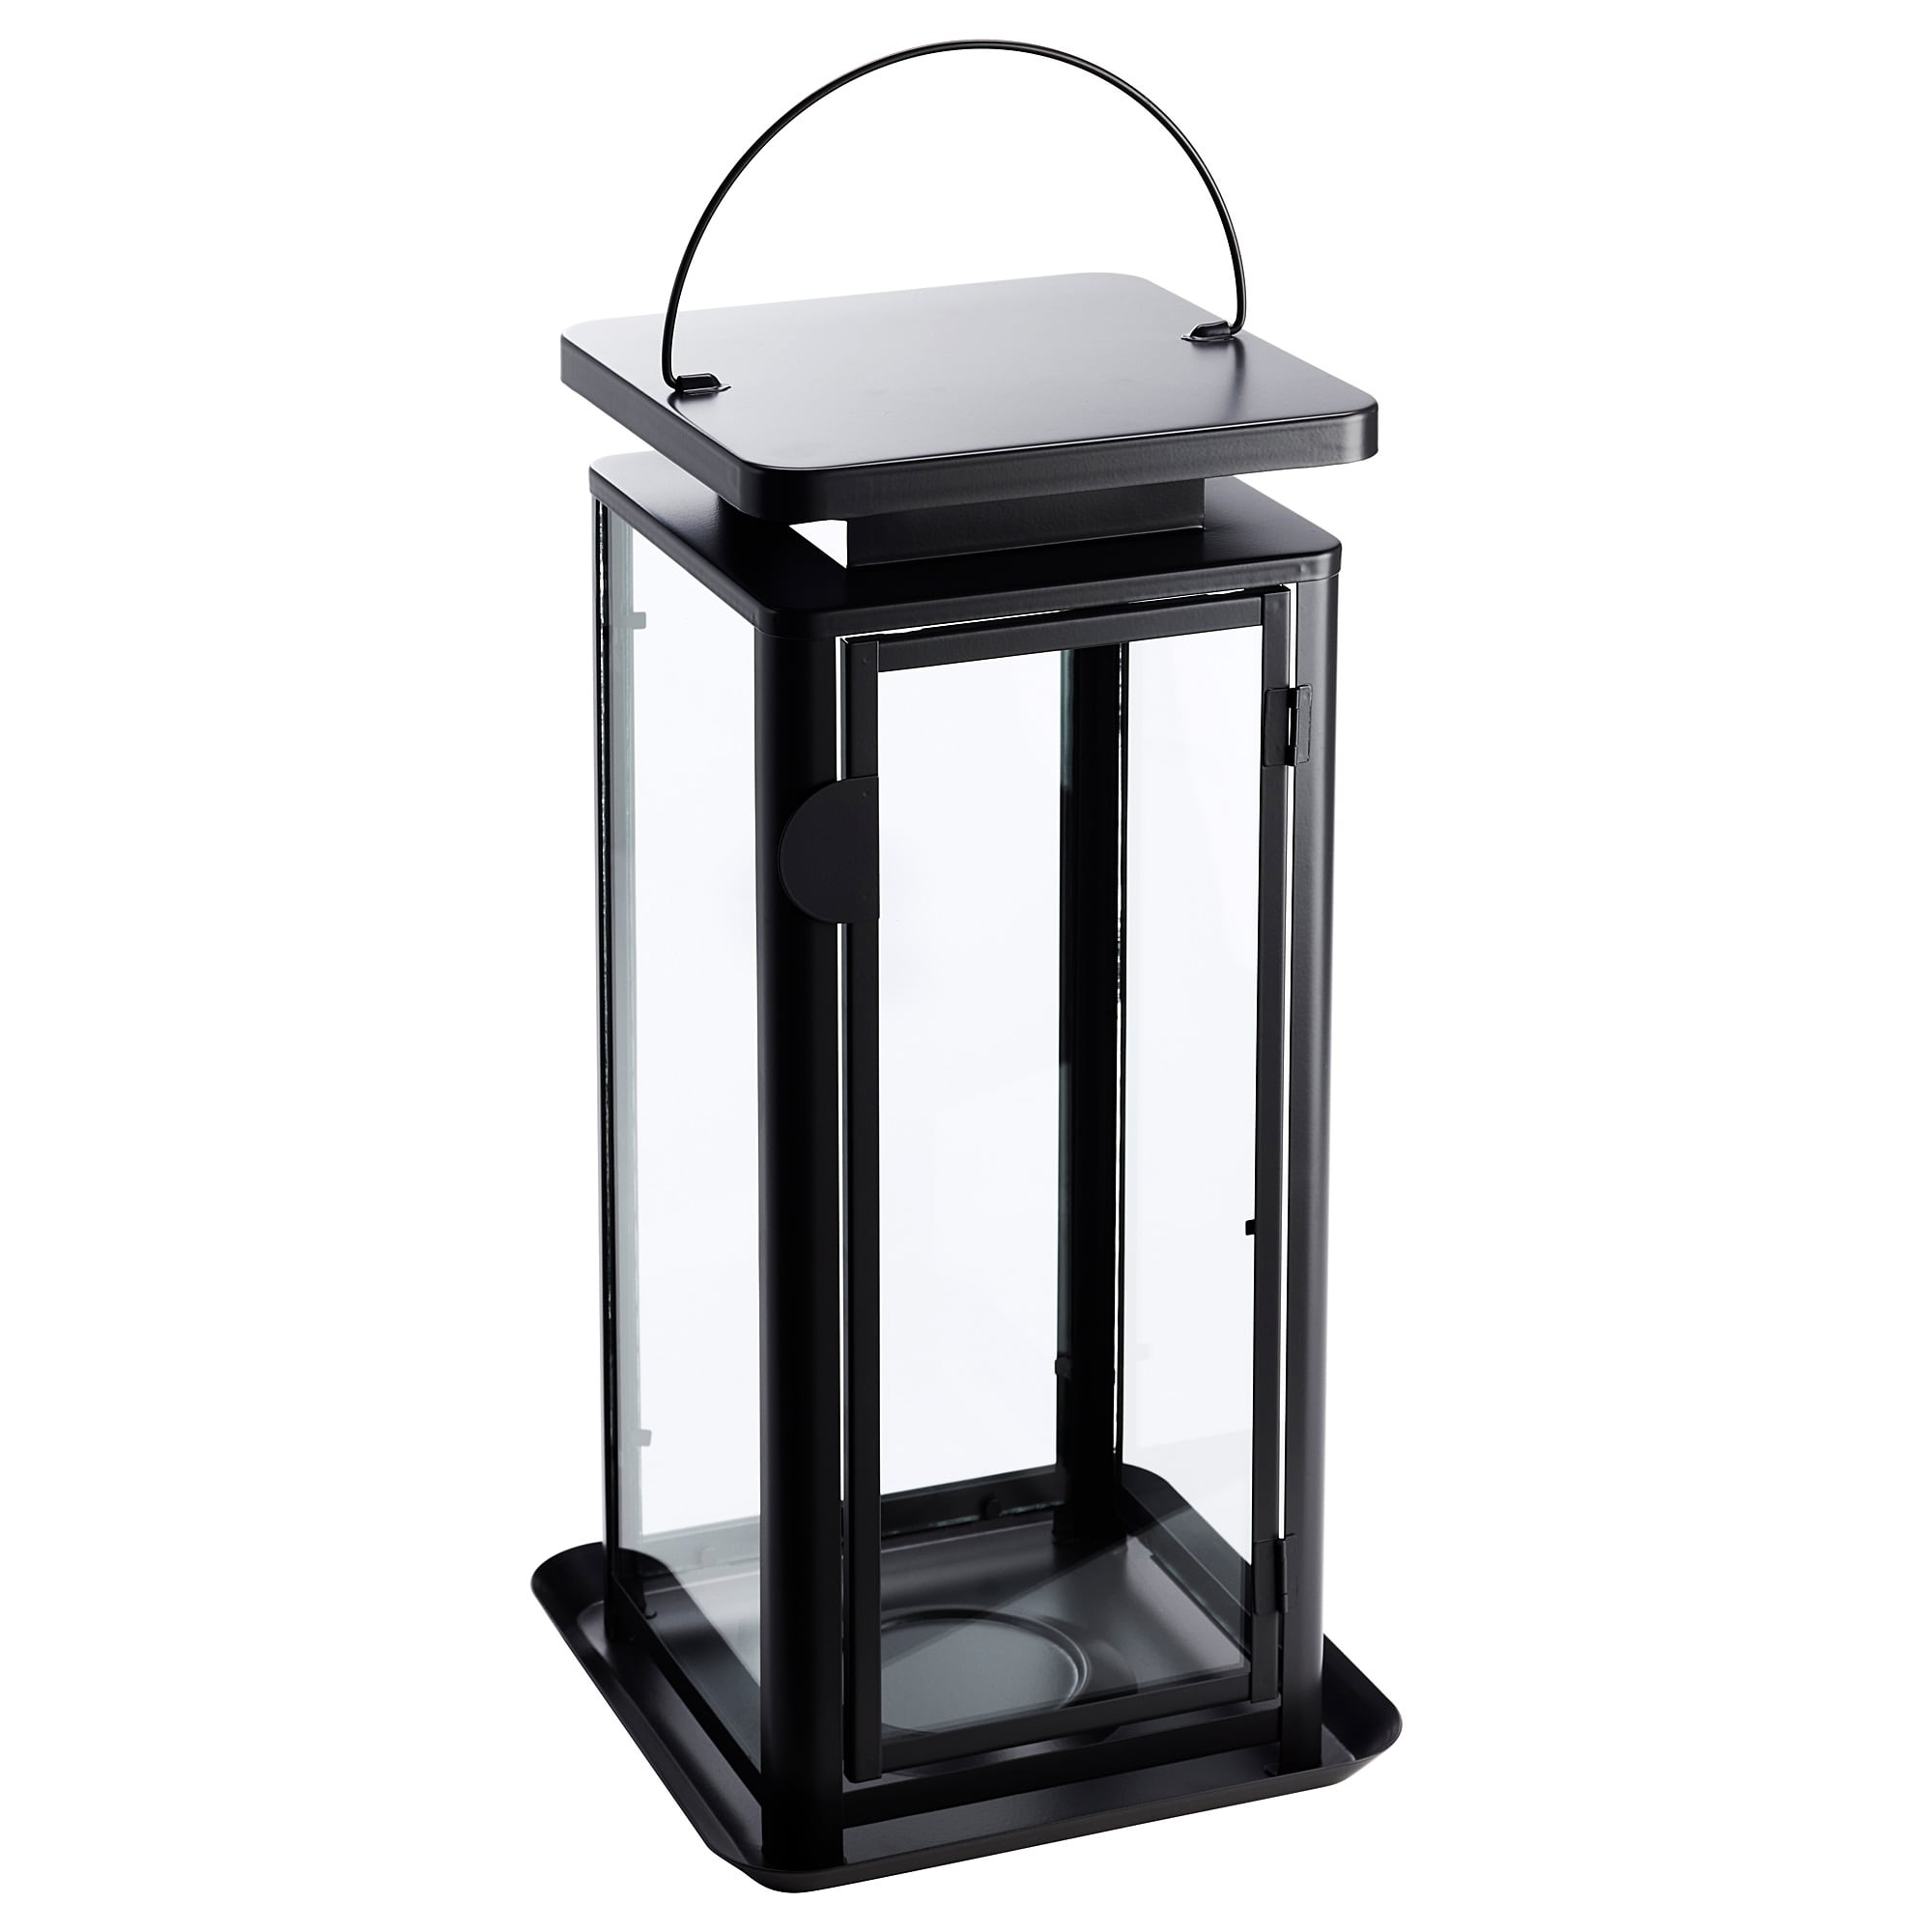 Sinnesro Lantern F Block Candle, In/outdoor Grey 45 Cm – Ikea For Latest Outdoor Grey Lanterns (View 3 of 20)